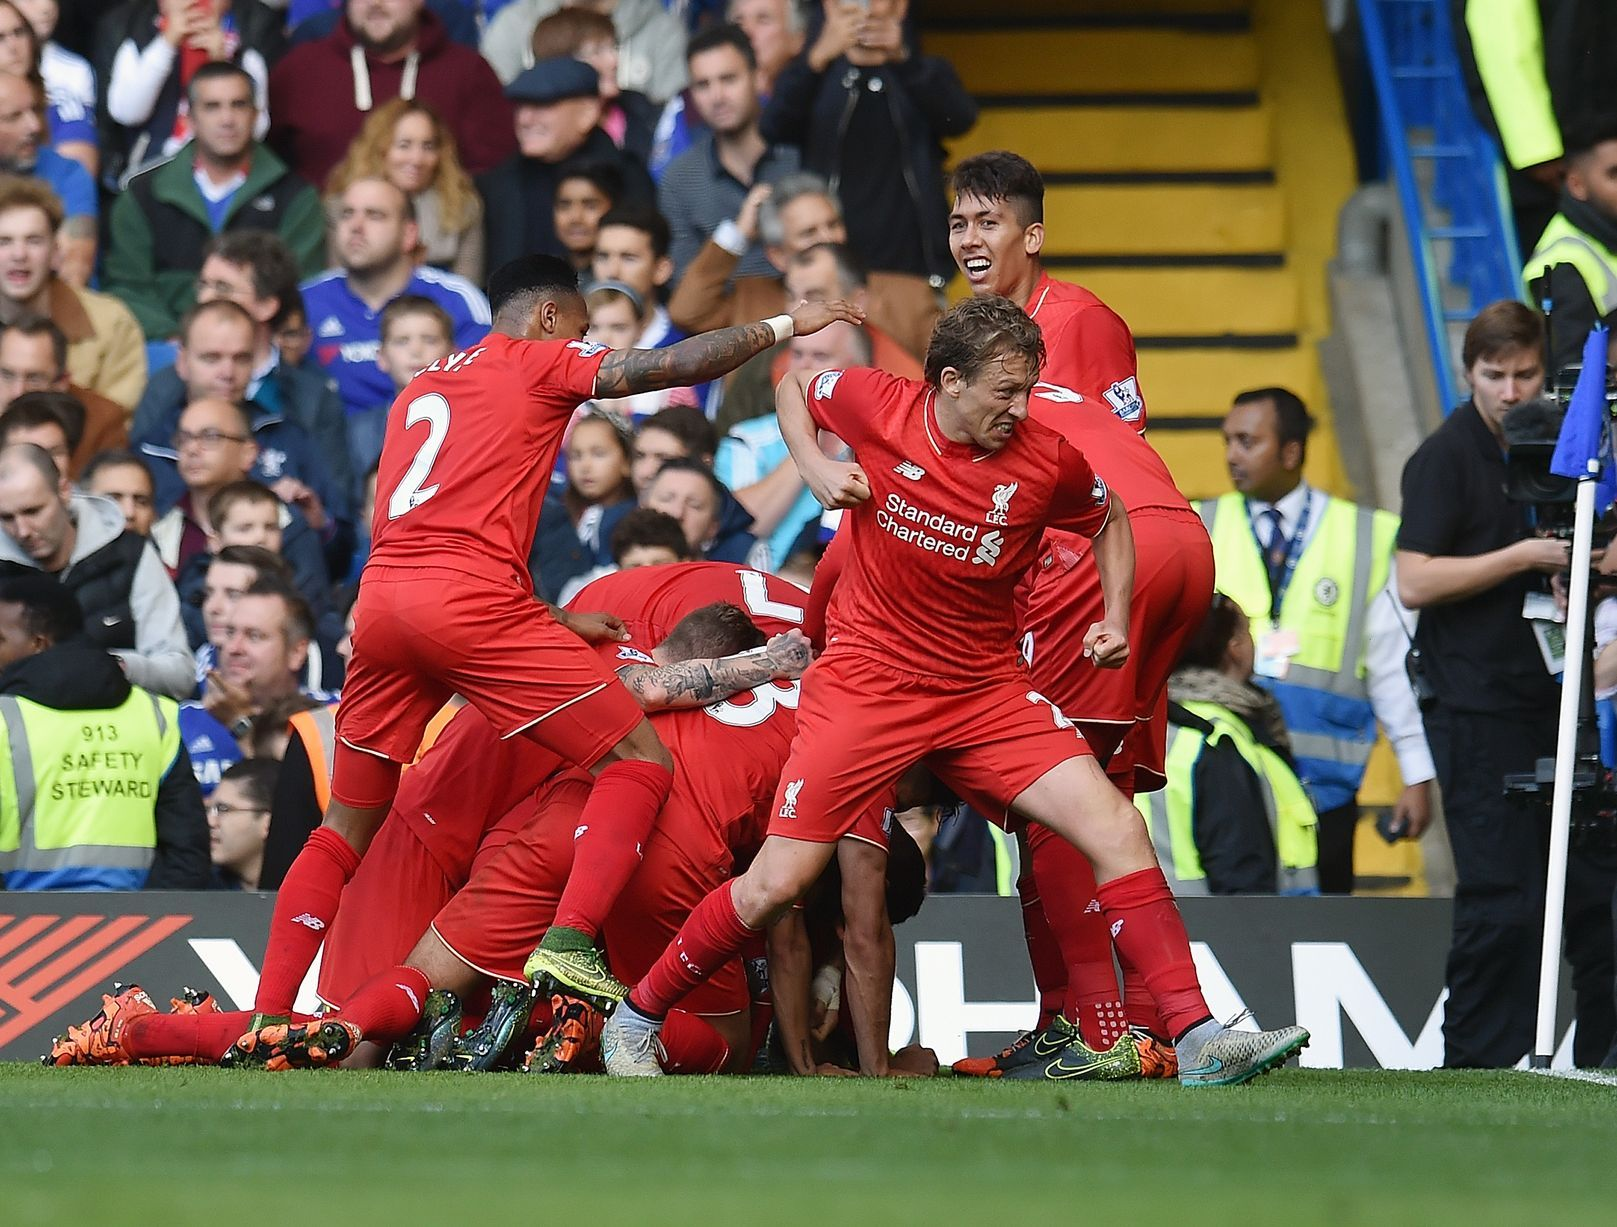 Chelsea 13 Liverpool Reds fans, pundits and explayers